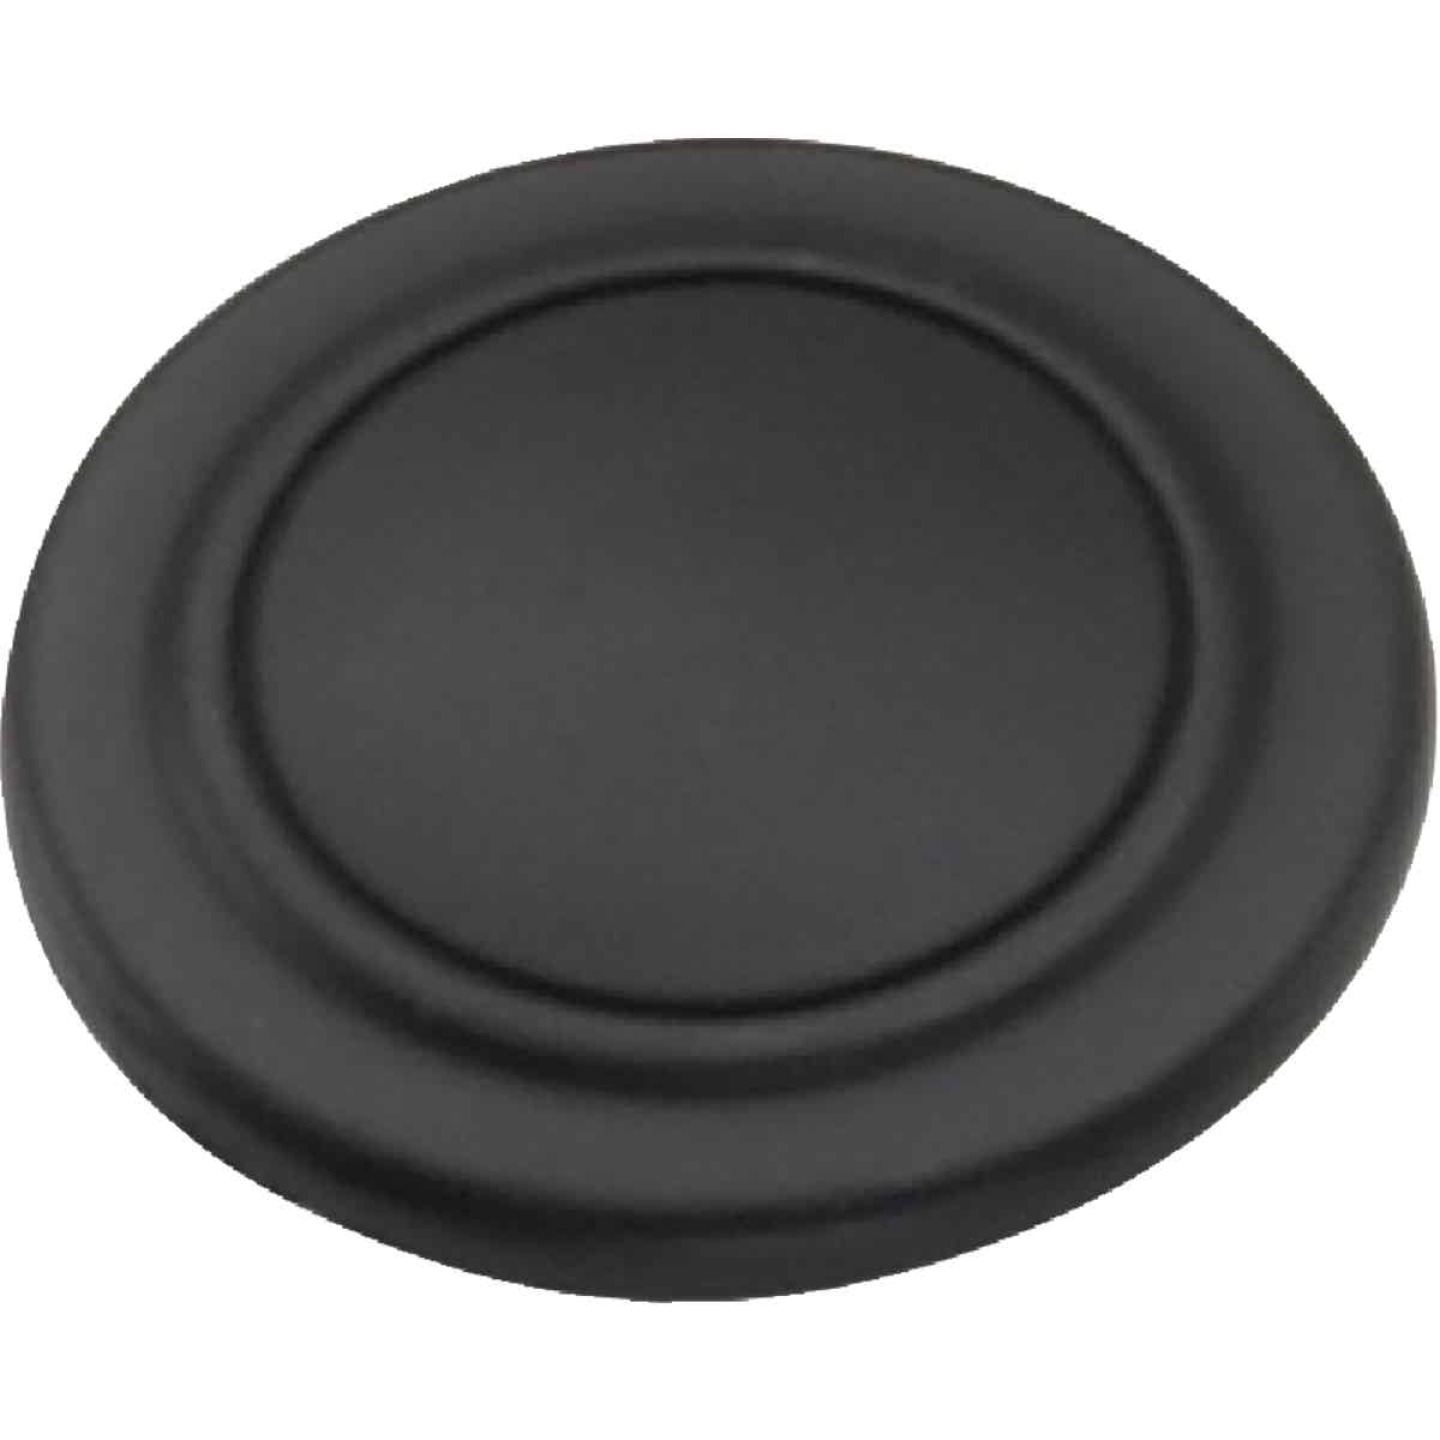 Laurey Oil Rubbed Bronze 1-1/4 In. Cabinet Knob Image 1